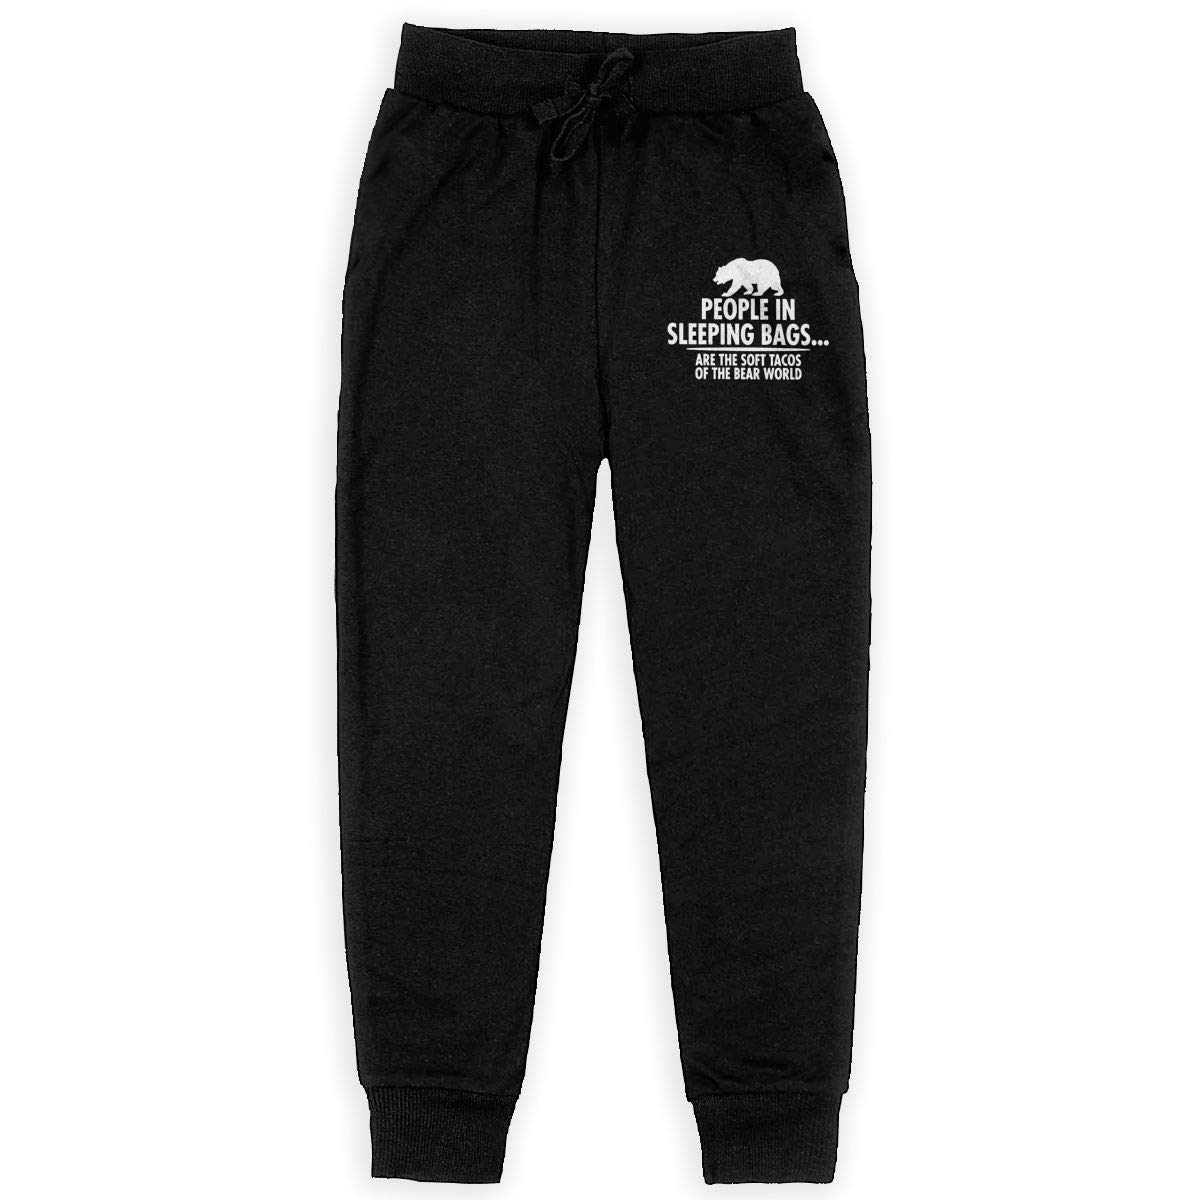 Kim Mittelstaedt People in Sleeping Bags are The Soft Tacos Boys Big Active Basic Casual Pants Sweatpants for Boys Black